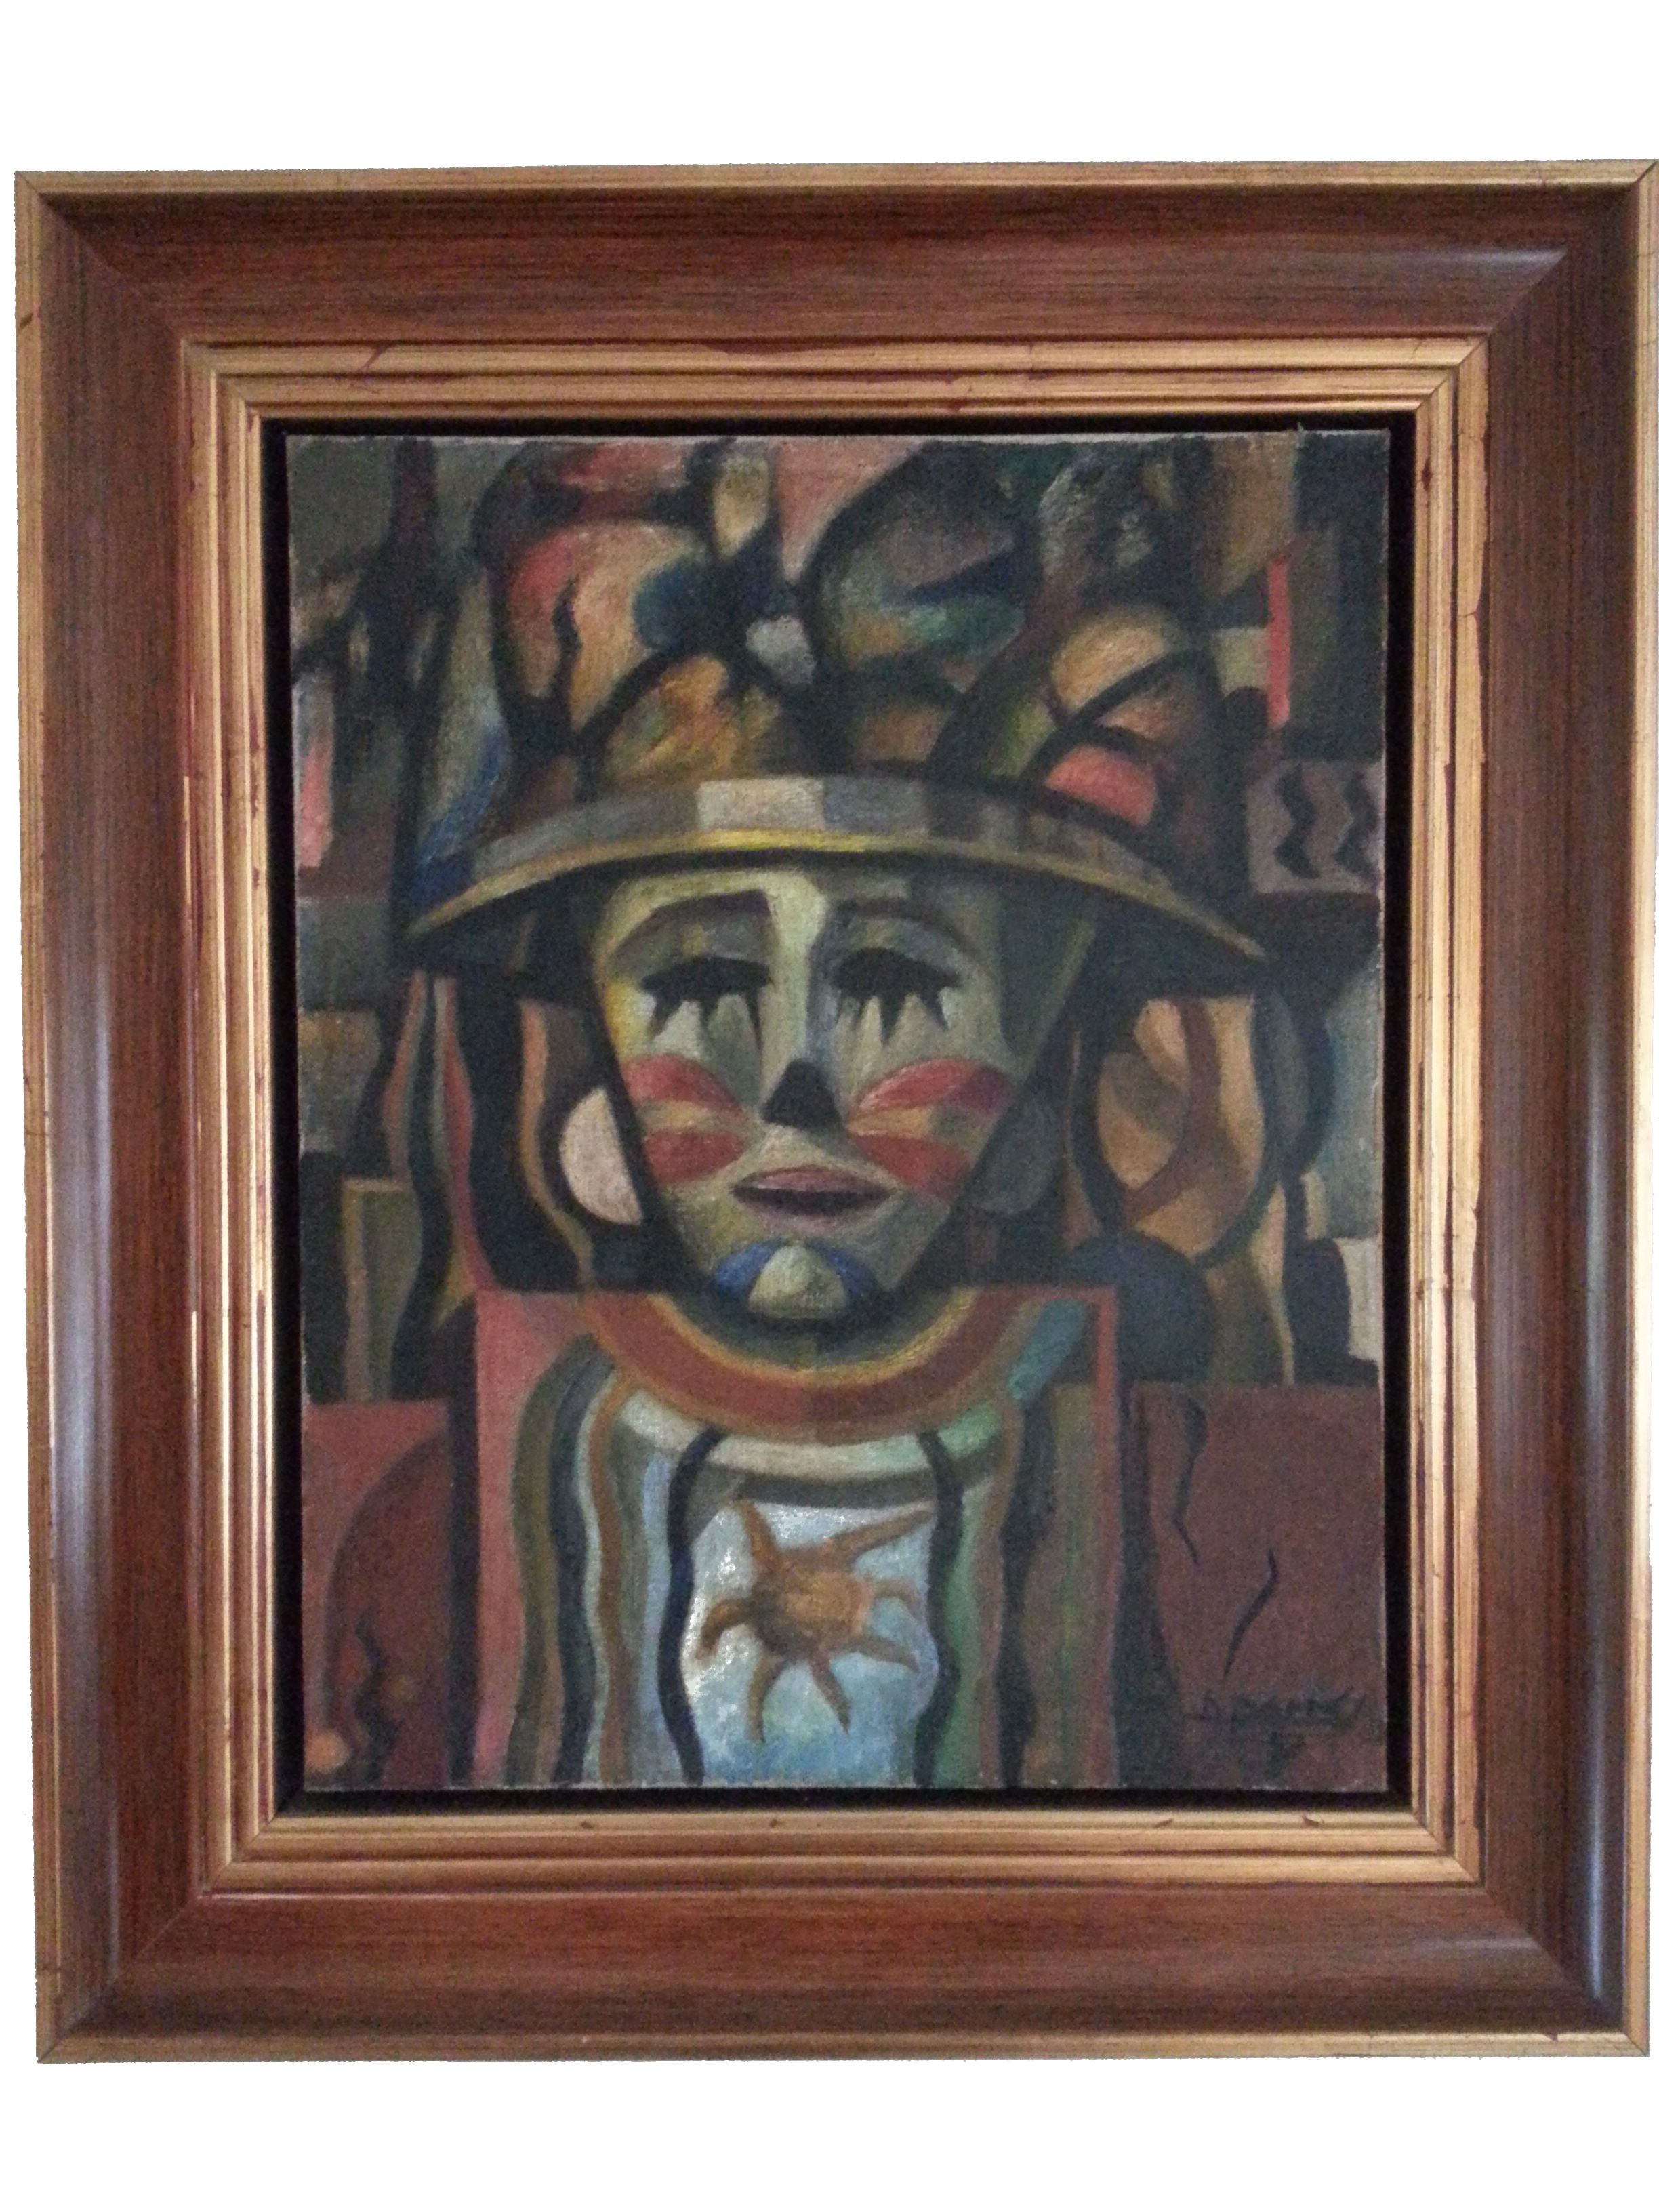 """Cabeza de Danzante  ( 1957 )   Oil on Canvas, Signed ( l.r. ) """"D. Paredes 57""""  20"""" x 17"""" / 26 1/2"""" x 23 1/2"""" Framed    Price Available Upon Request    Artist Biography: Diógenes Paredes Castillo was born on May 5th / 1910 in Tulcán city, located in the province of Carchi, Ecuador.  When he was 19 years old he started to become really interested in painting and decided to study at the """"Bellas Artes"""" School in Quito, where he later became a teacher and director. His left ideology led him to have communist tendencies and also to be atheist.  In 1938 Paredes founded the """"Sindicato de Escritores y Artistas del Ecuador"""" (Labor Union of Writers and Artists of Ecuador) with Jorge Icaza, Benjamín Carrión, Eduardo Kingman, Demetrio Aguilera, and some others. Kingman called this labor union like """"an identification with the worker community, because we are considered just like workers situated in the field of culture"""".  One of the most important activities organized by the Union Labor was, """"Los Salones de Mayo"""" (the May Salons), where many paintings of urban landscapes as well as social or indigenous themes were exhibited. Paredes also exhibited two of his famous paintings: """"El Cargador y Los Pondos"""" (the shipper and the water carriers) which represented the life of the indigenous people in the country side. One of the typical pattern strongly handled was the one that leagued the man with the ground, that according to the critique both of them formed an inseparable unity.  In 1944 The Union Labor of Writers and Artists of Ecuador did not work anymore and the Ecuadorian House of Culture was created. The first art impulsion given by this one was the creation of """"Los Salones Nacionales de Artes Plásticas"""" (National Salons of Plastic Art). After few years Paredes won the First Prize in the """"First Salon of Plastic Art), and for this reason the House of Culture told him and José Enrique Guerrero to take charge of the painting of the walls located in the lobby of the new building of t"""